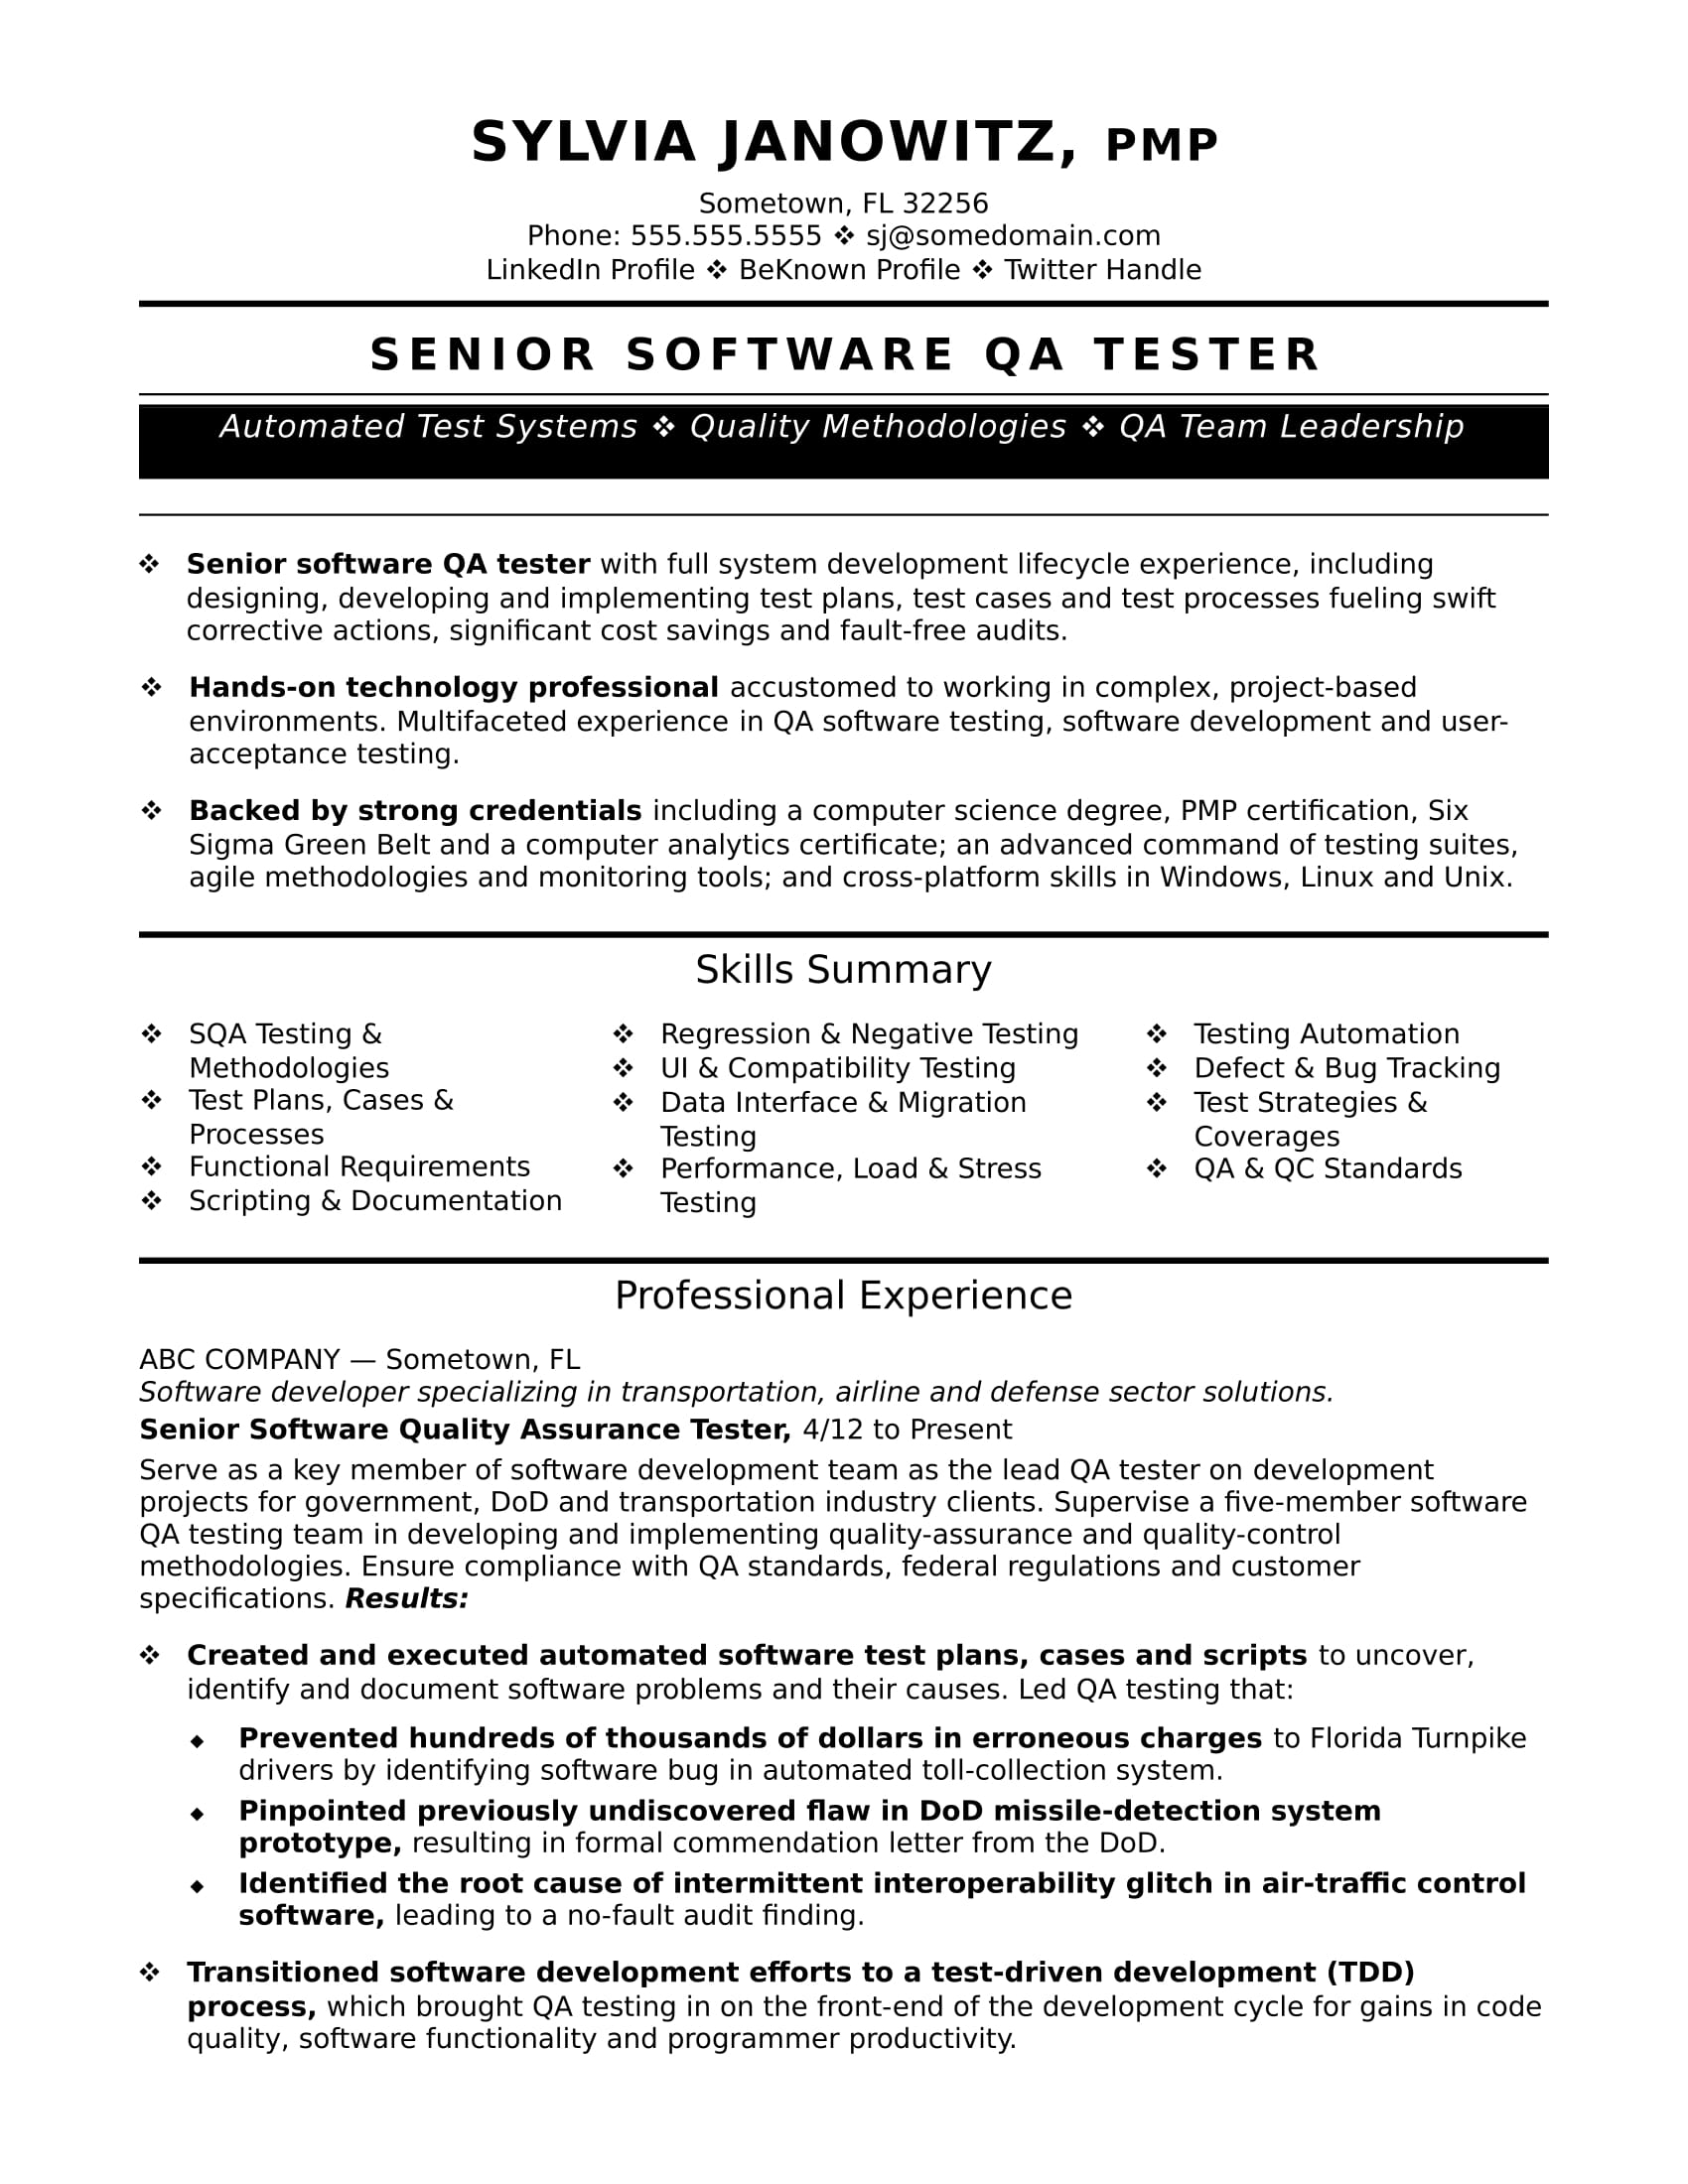 Experienced QA Software Tester Resume Sample | Monster com